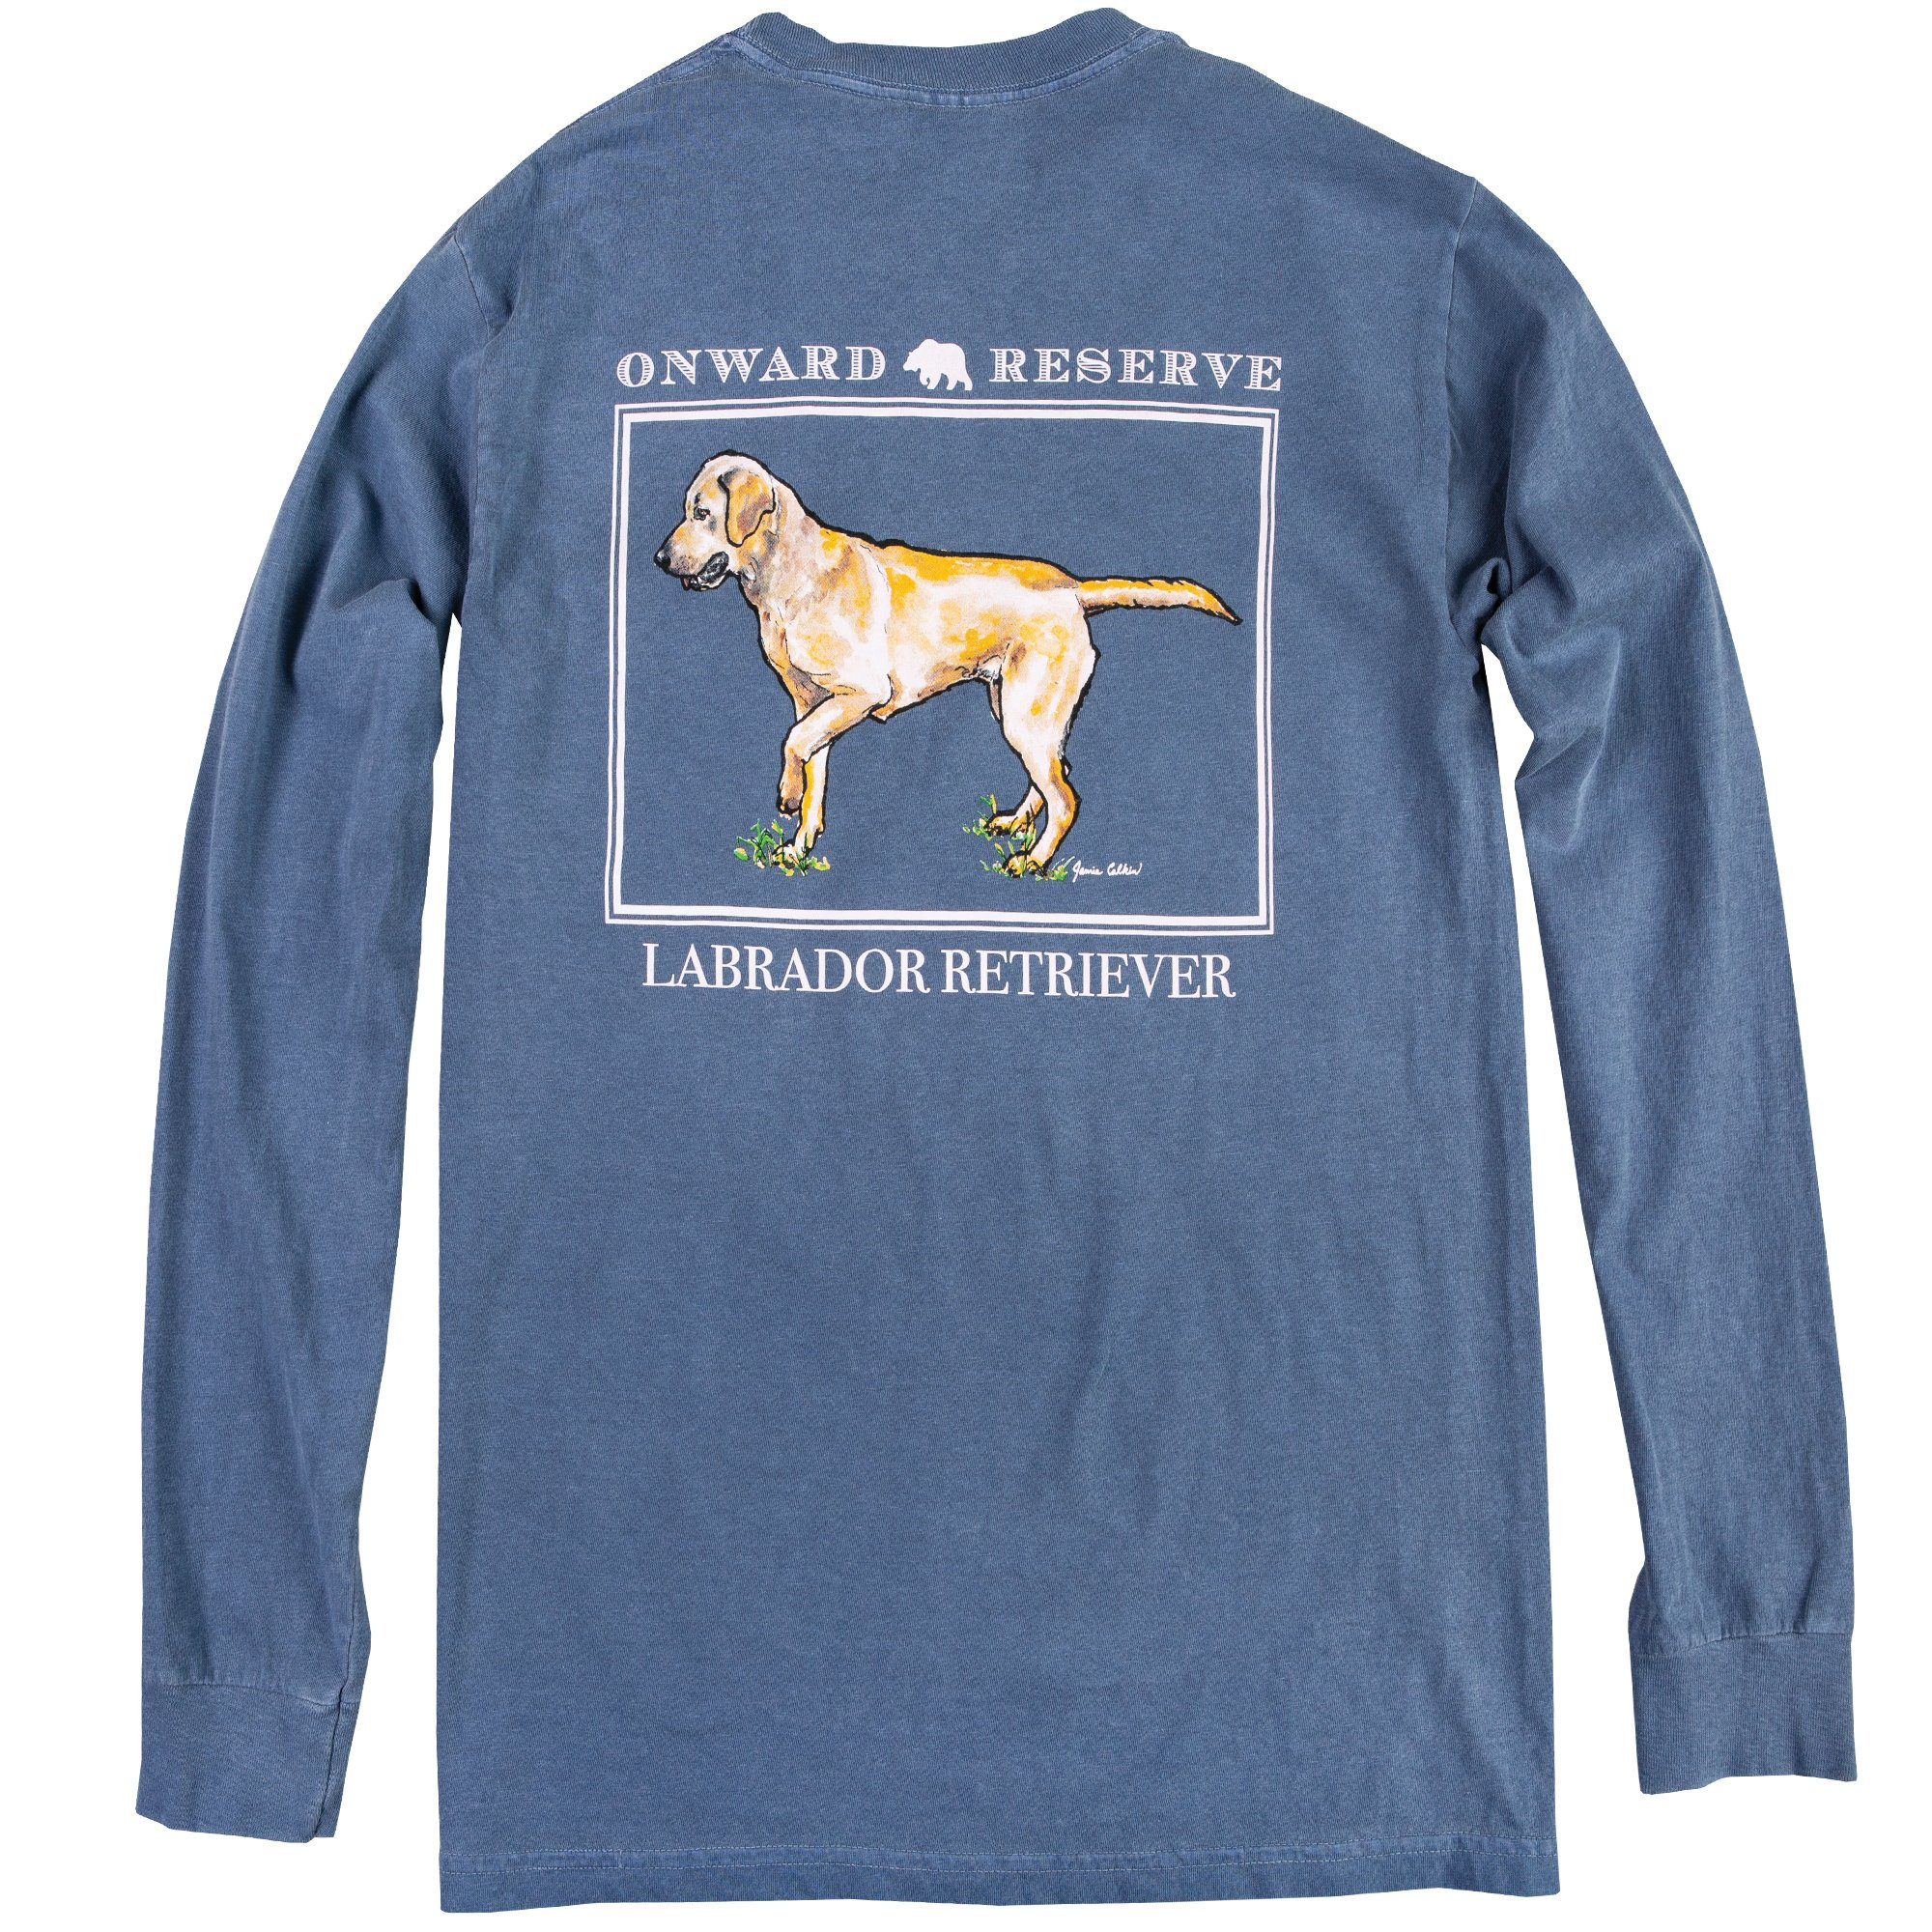 OR-Jamie-Tee-LS-Labrador-Retriever-Blue-Back.jpg